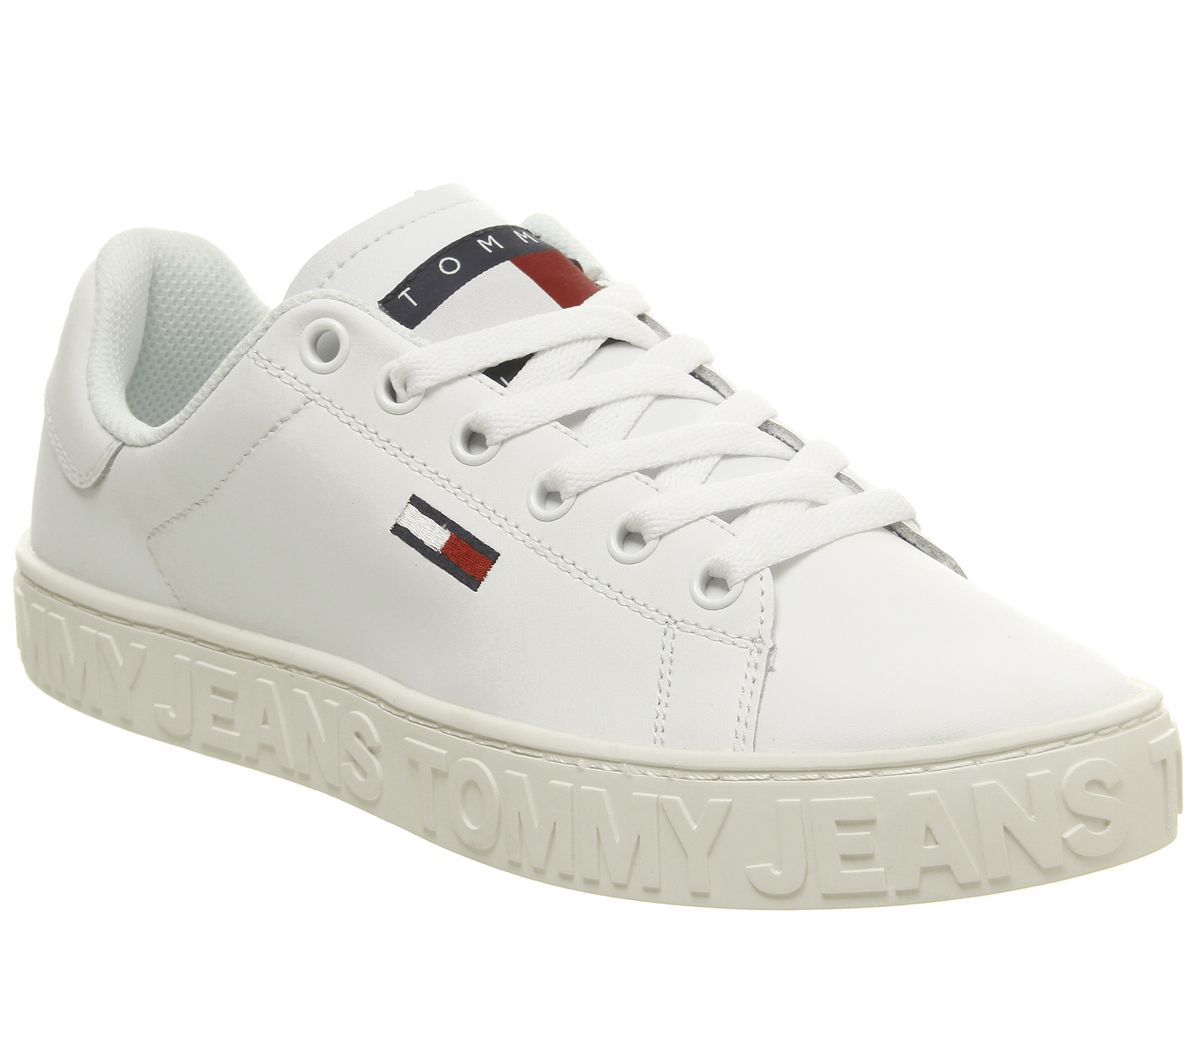 c6f21d965cb5 Tommy Hilfiger Jaz Trainers White - Hers trainers